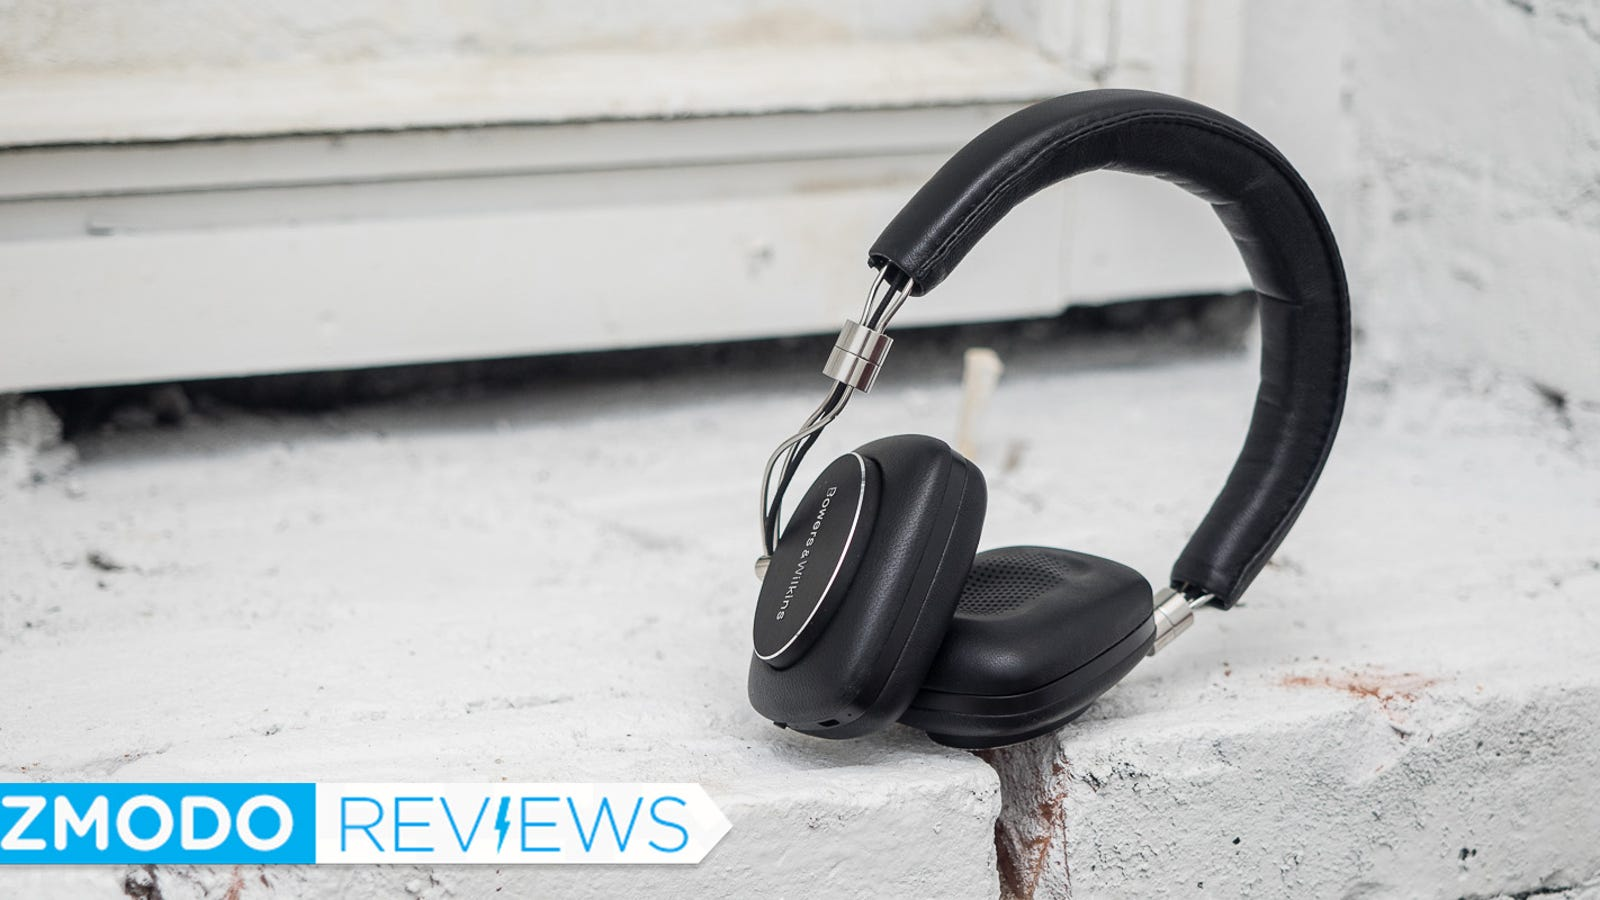 mpow true wireless earbuds - Bowers & Wilkins' First Wireless Headphones Are Brilliant—Except for One Thing